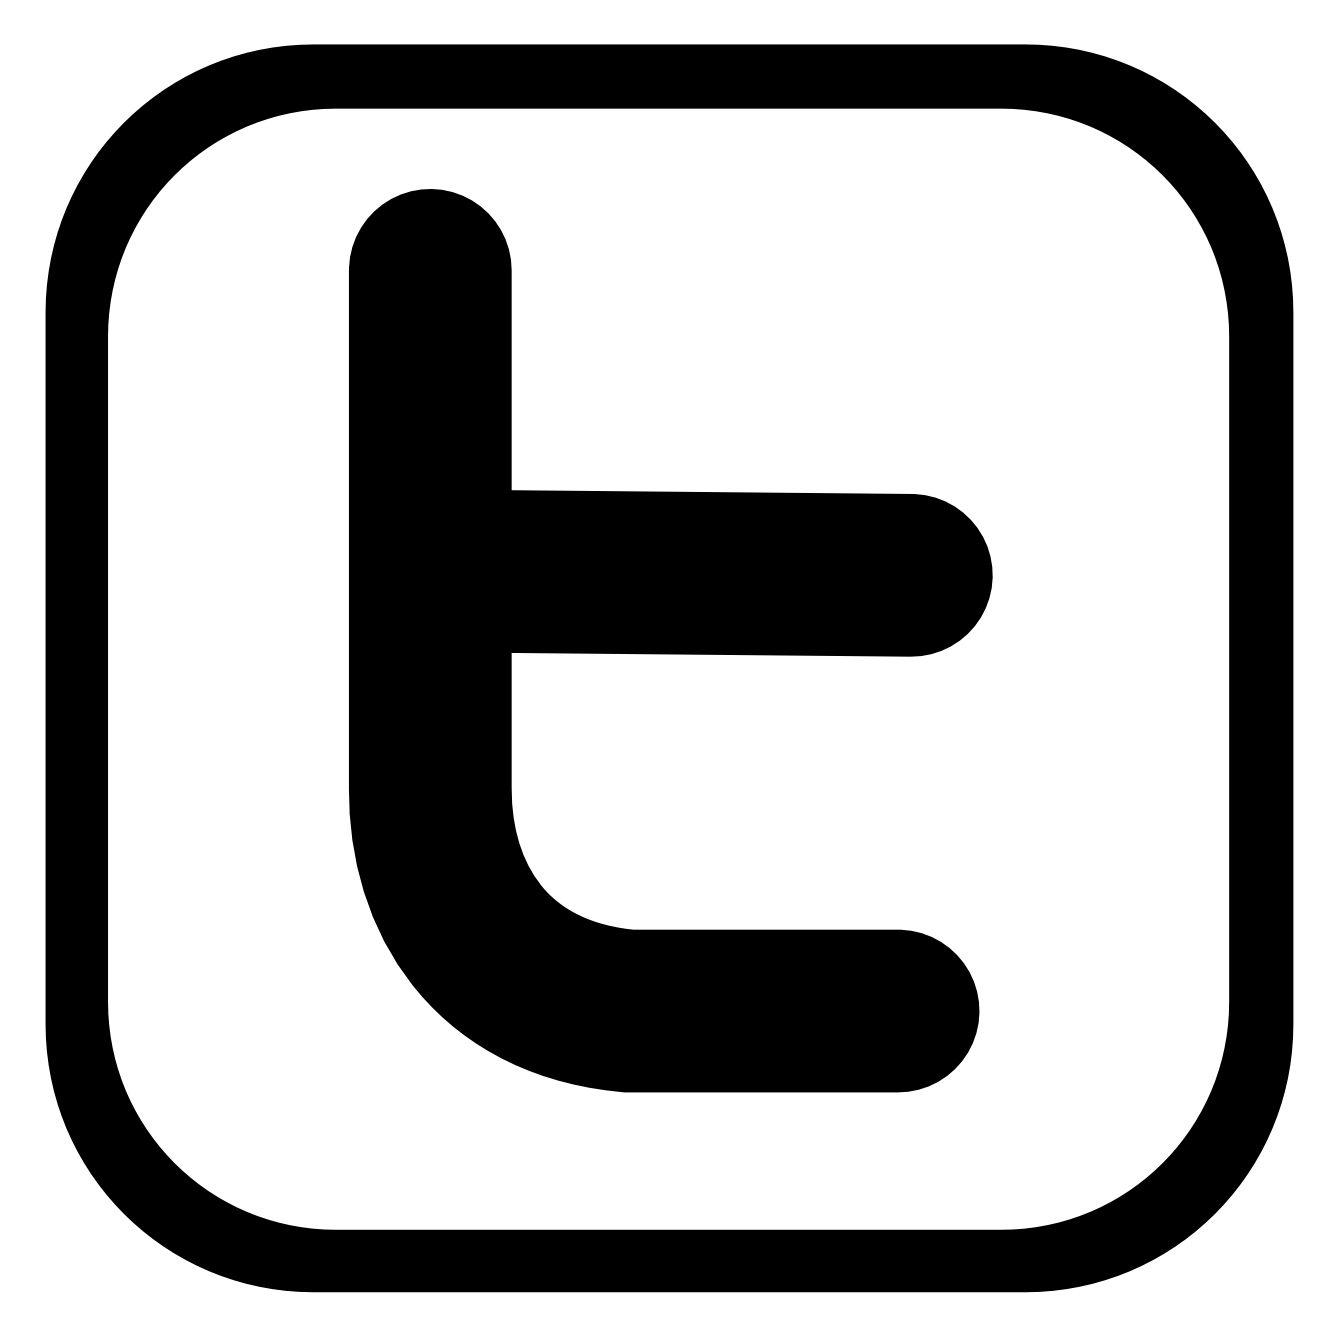 Twitter black png.  logo latest icon